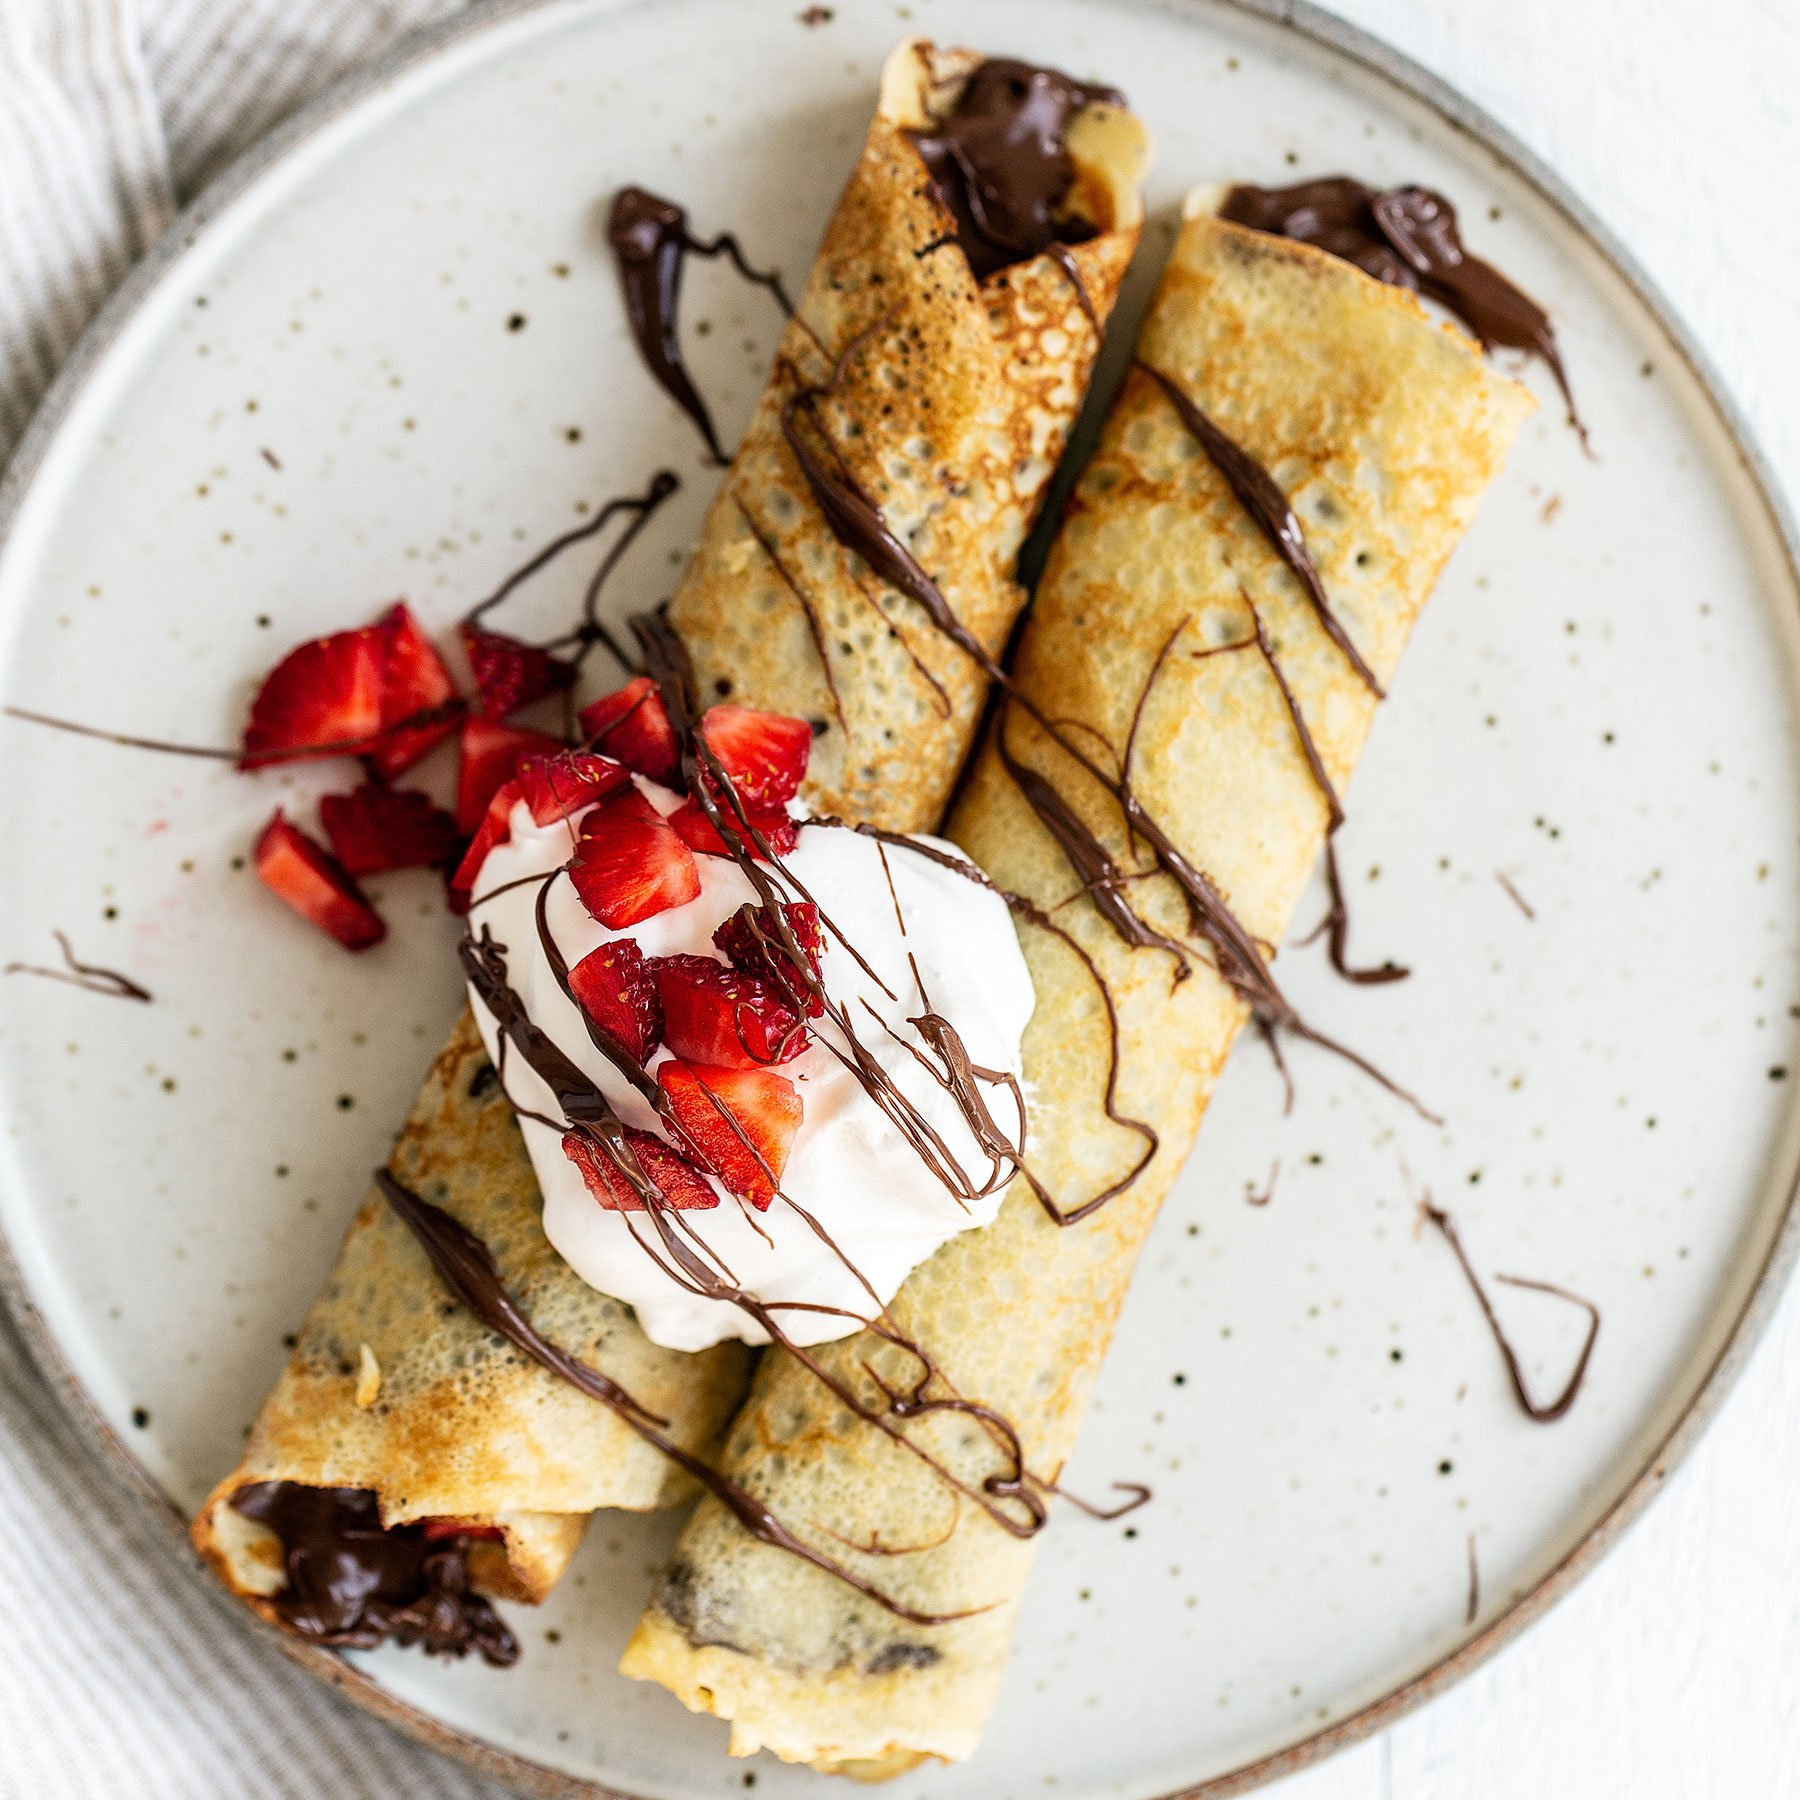 Two crepes on a plate with nutella, strawberries, and whipped cream on top